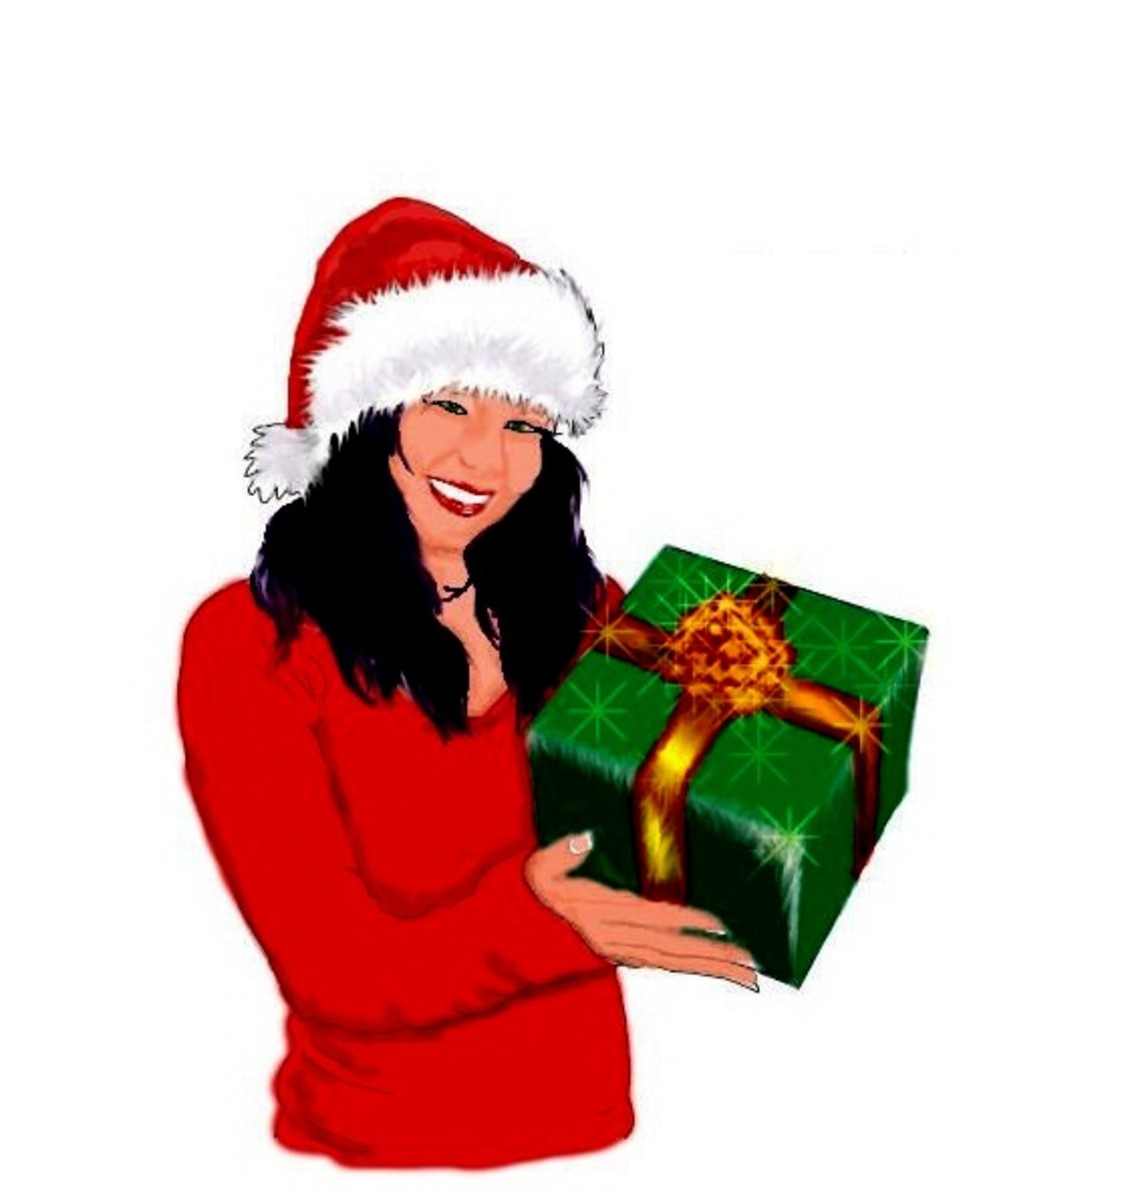 Why do we buy or give Gifts? Check out the Reasons for giving Presents on Christmas, New Year, Birthdays etc